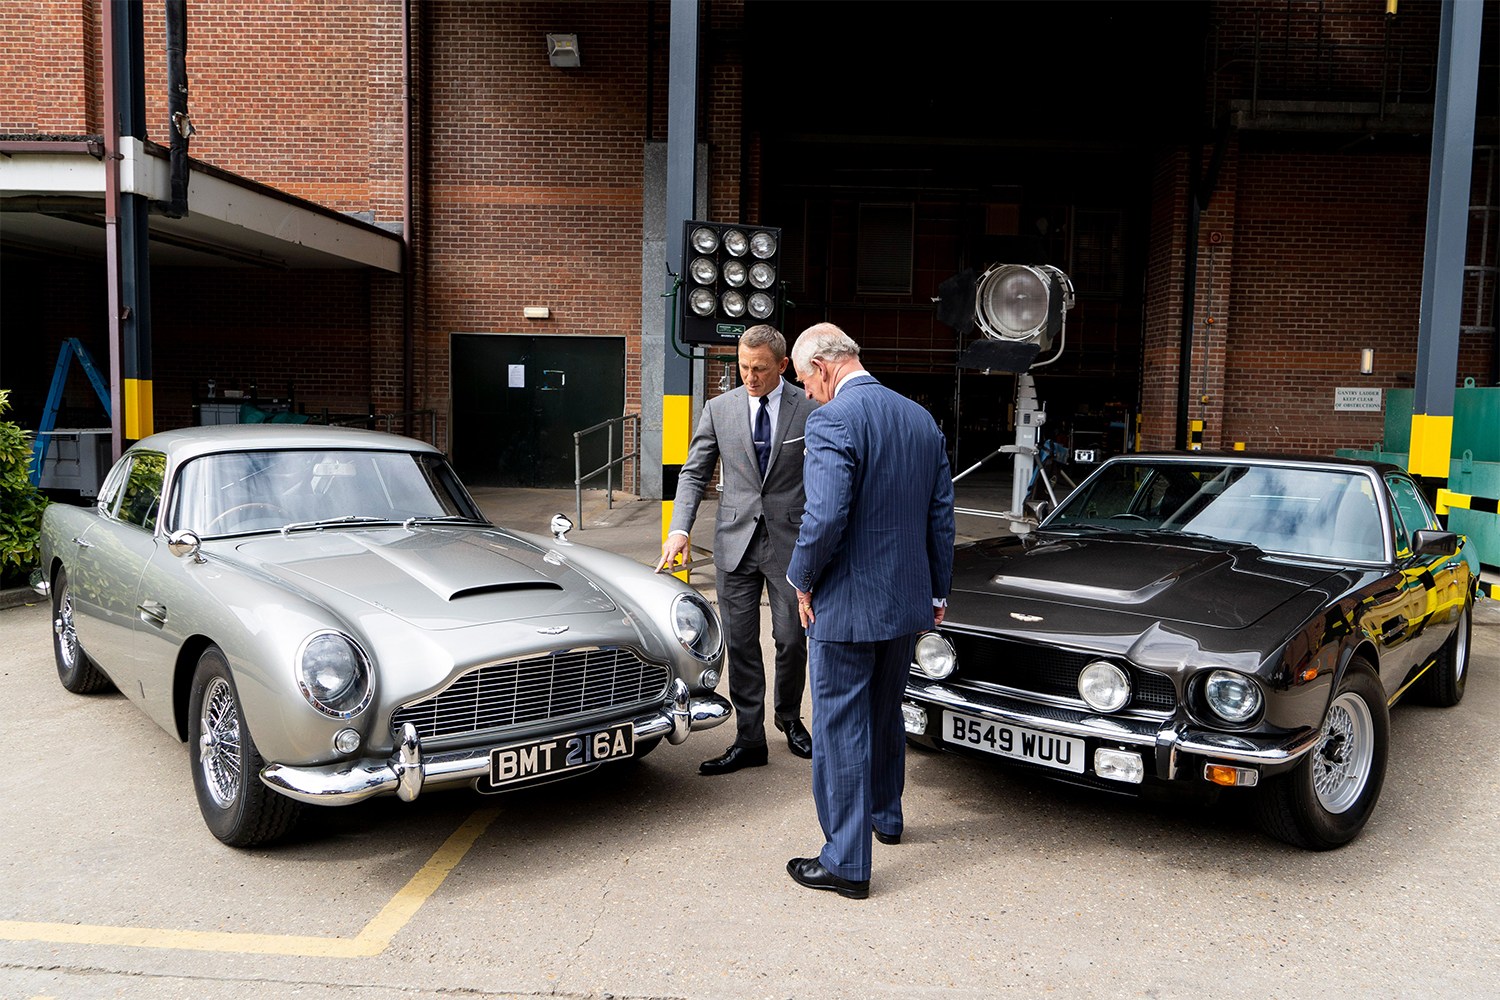 Aston Martin DB5 and V8 with James Bond's Daniel Craig and Prince Charles